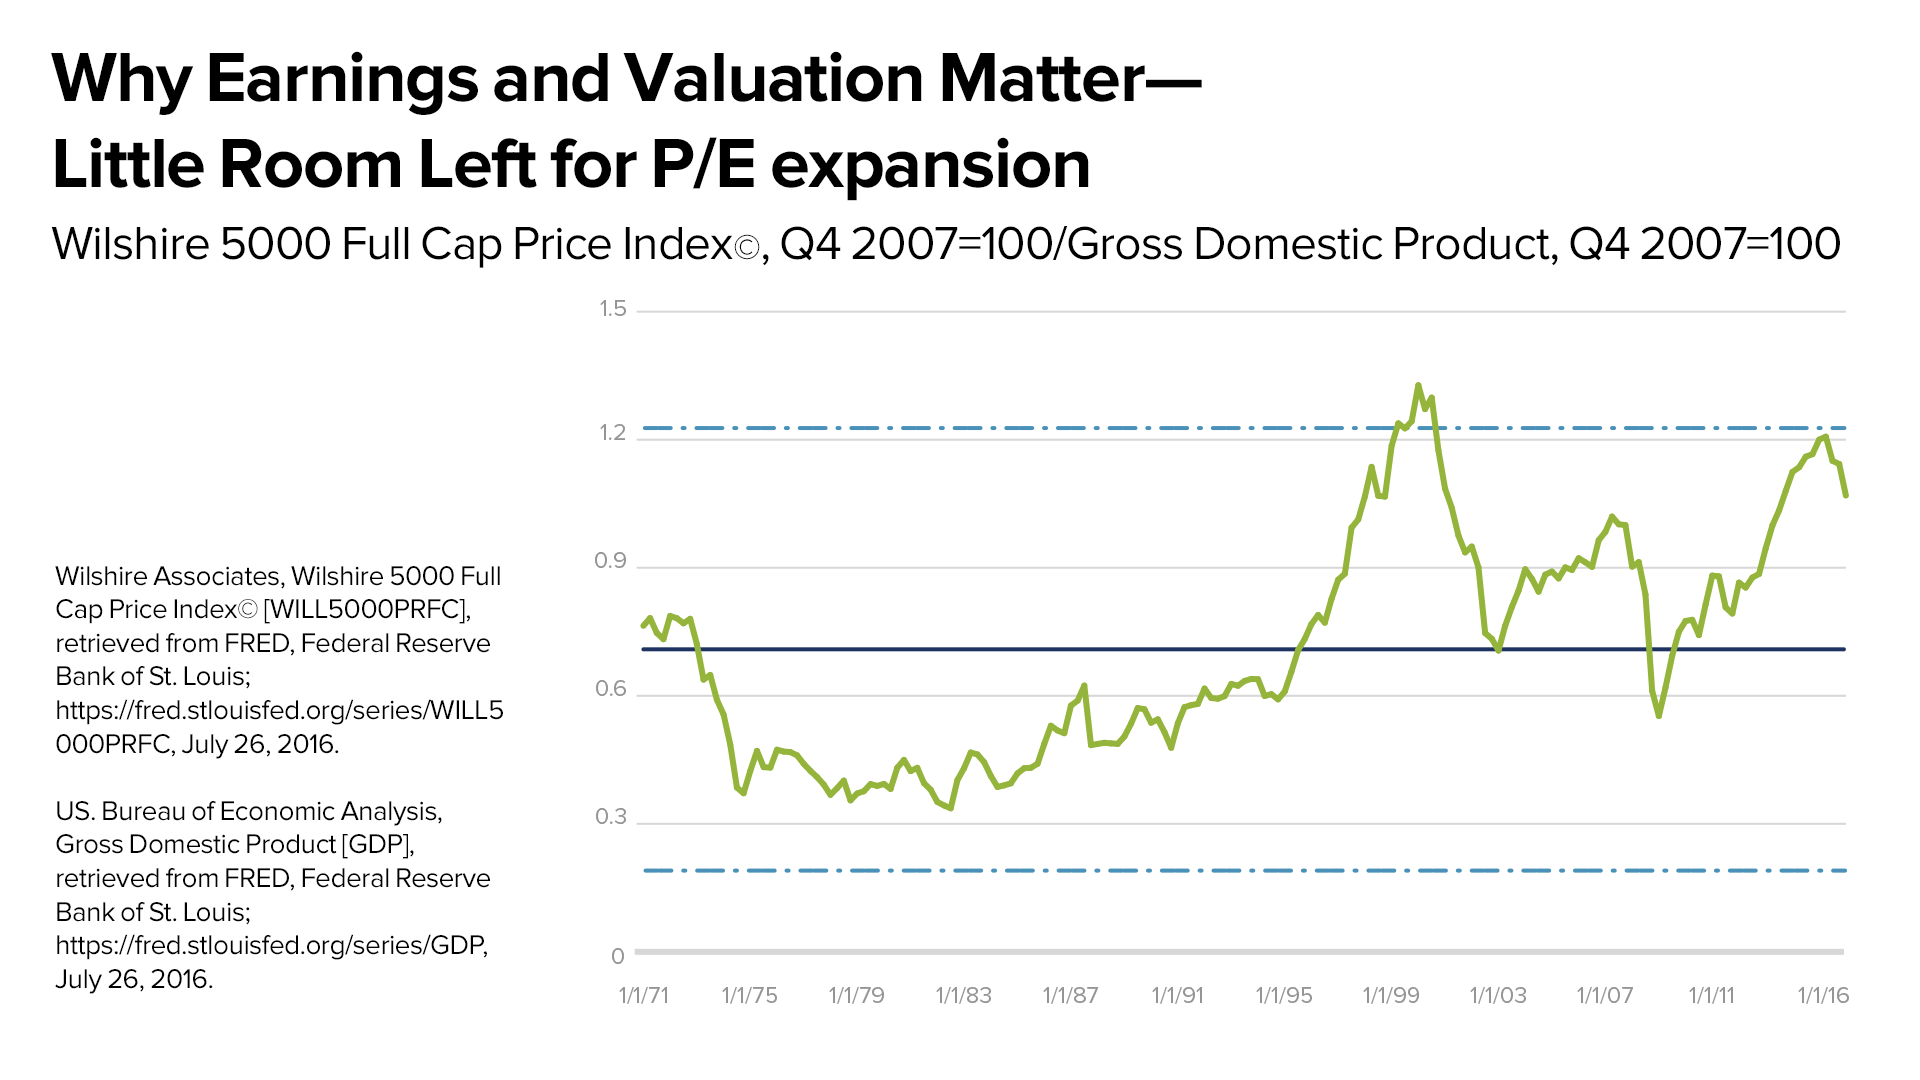 Why Earnings and Valuations Matter - Little Room Left for P/E expansion